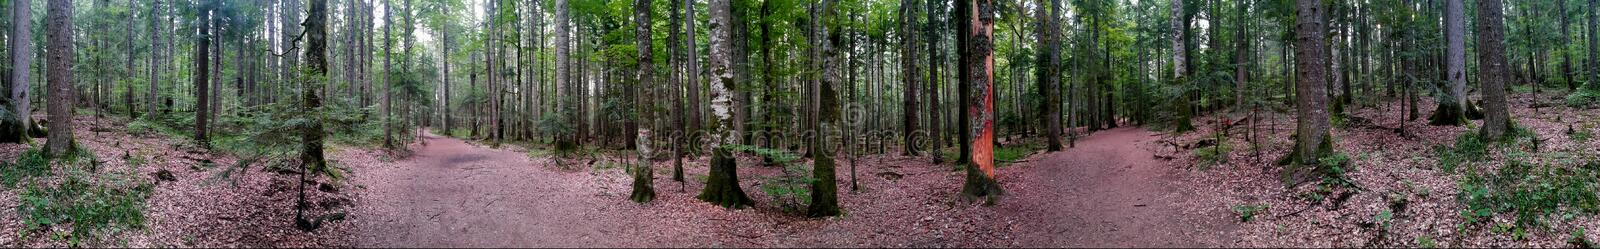 Forest Panorama stock afbeelding